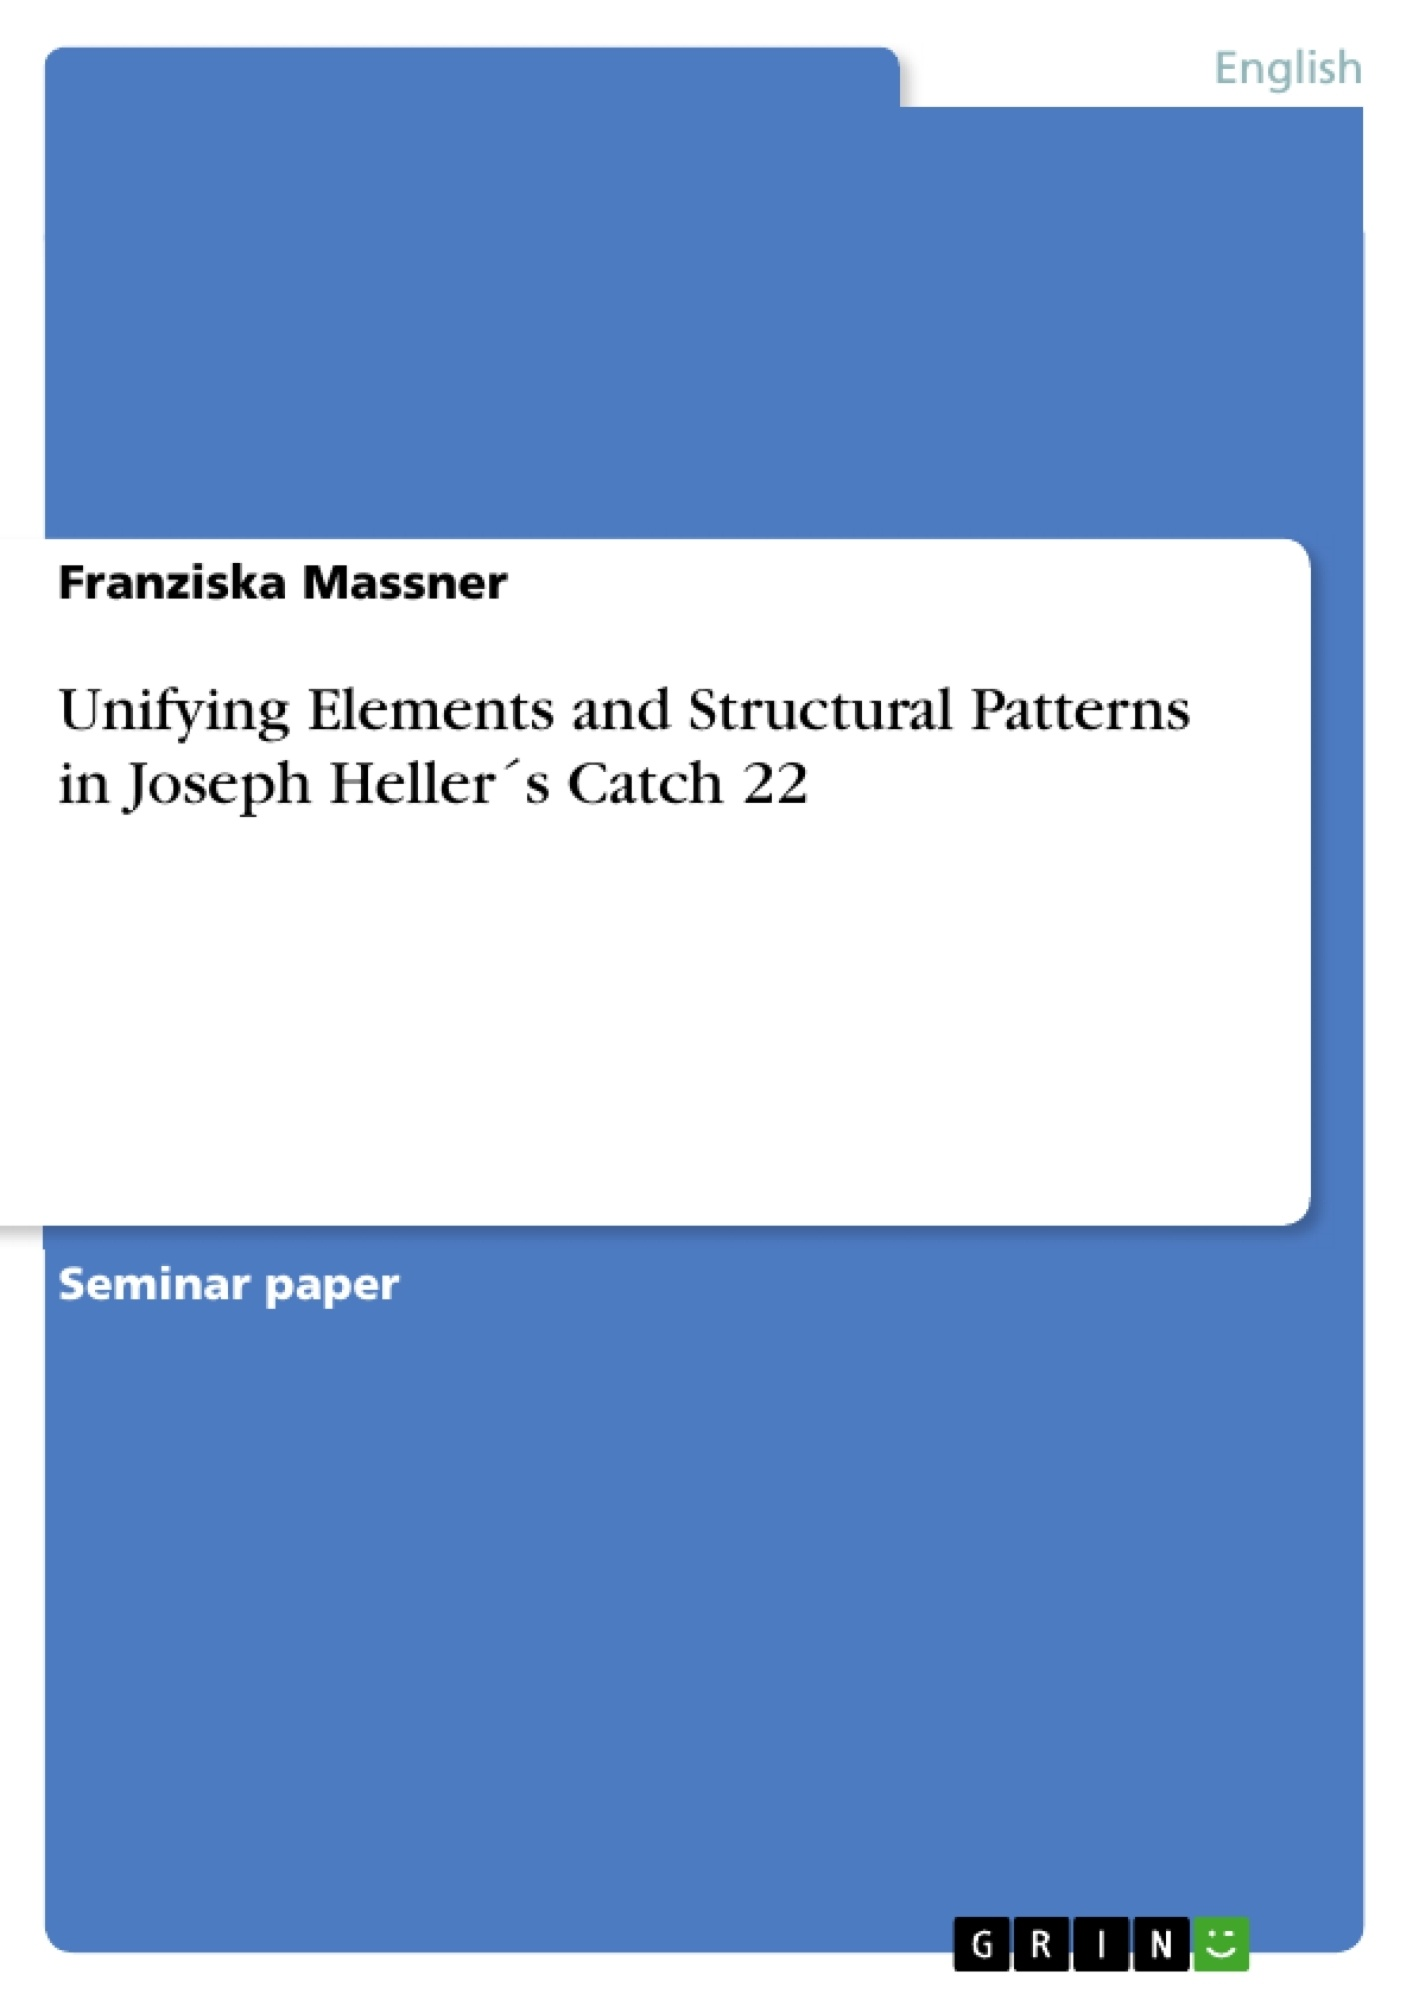 Title: Unifying Elements and Structural Patterns in Joseph Heller´s Catch 22